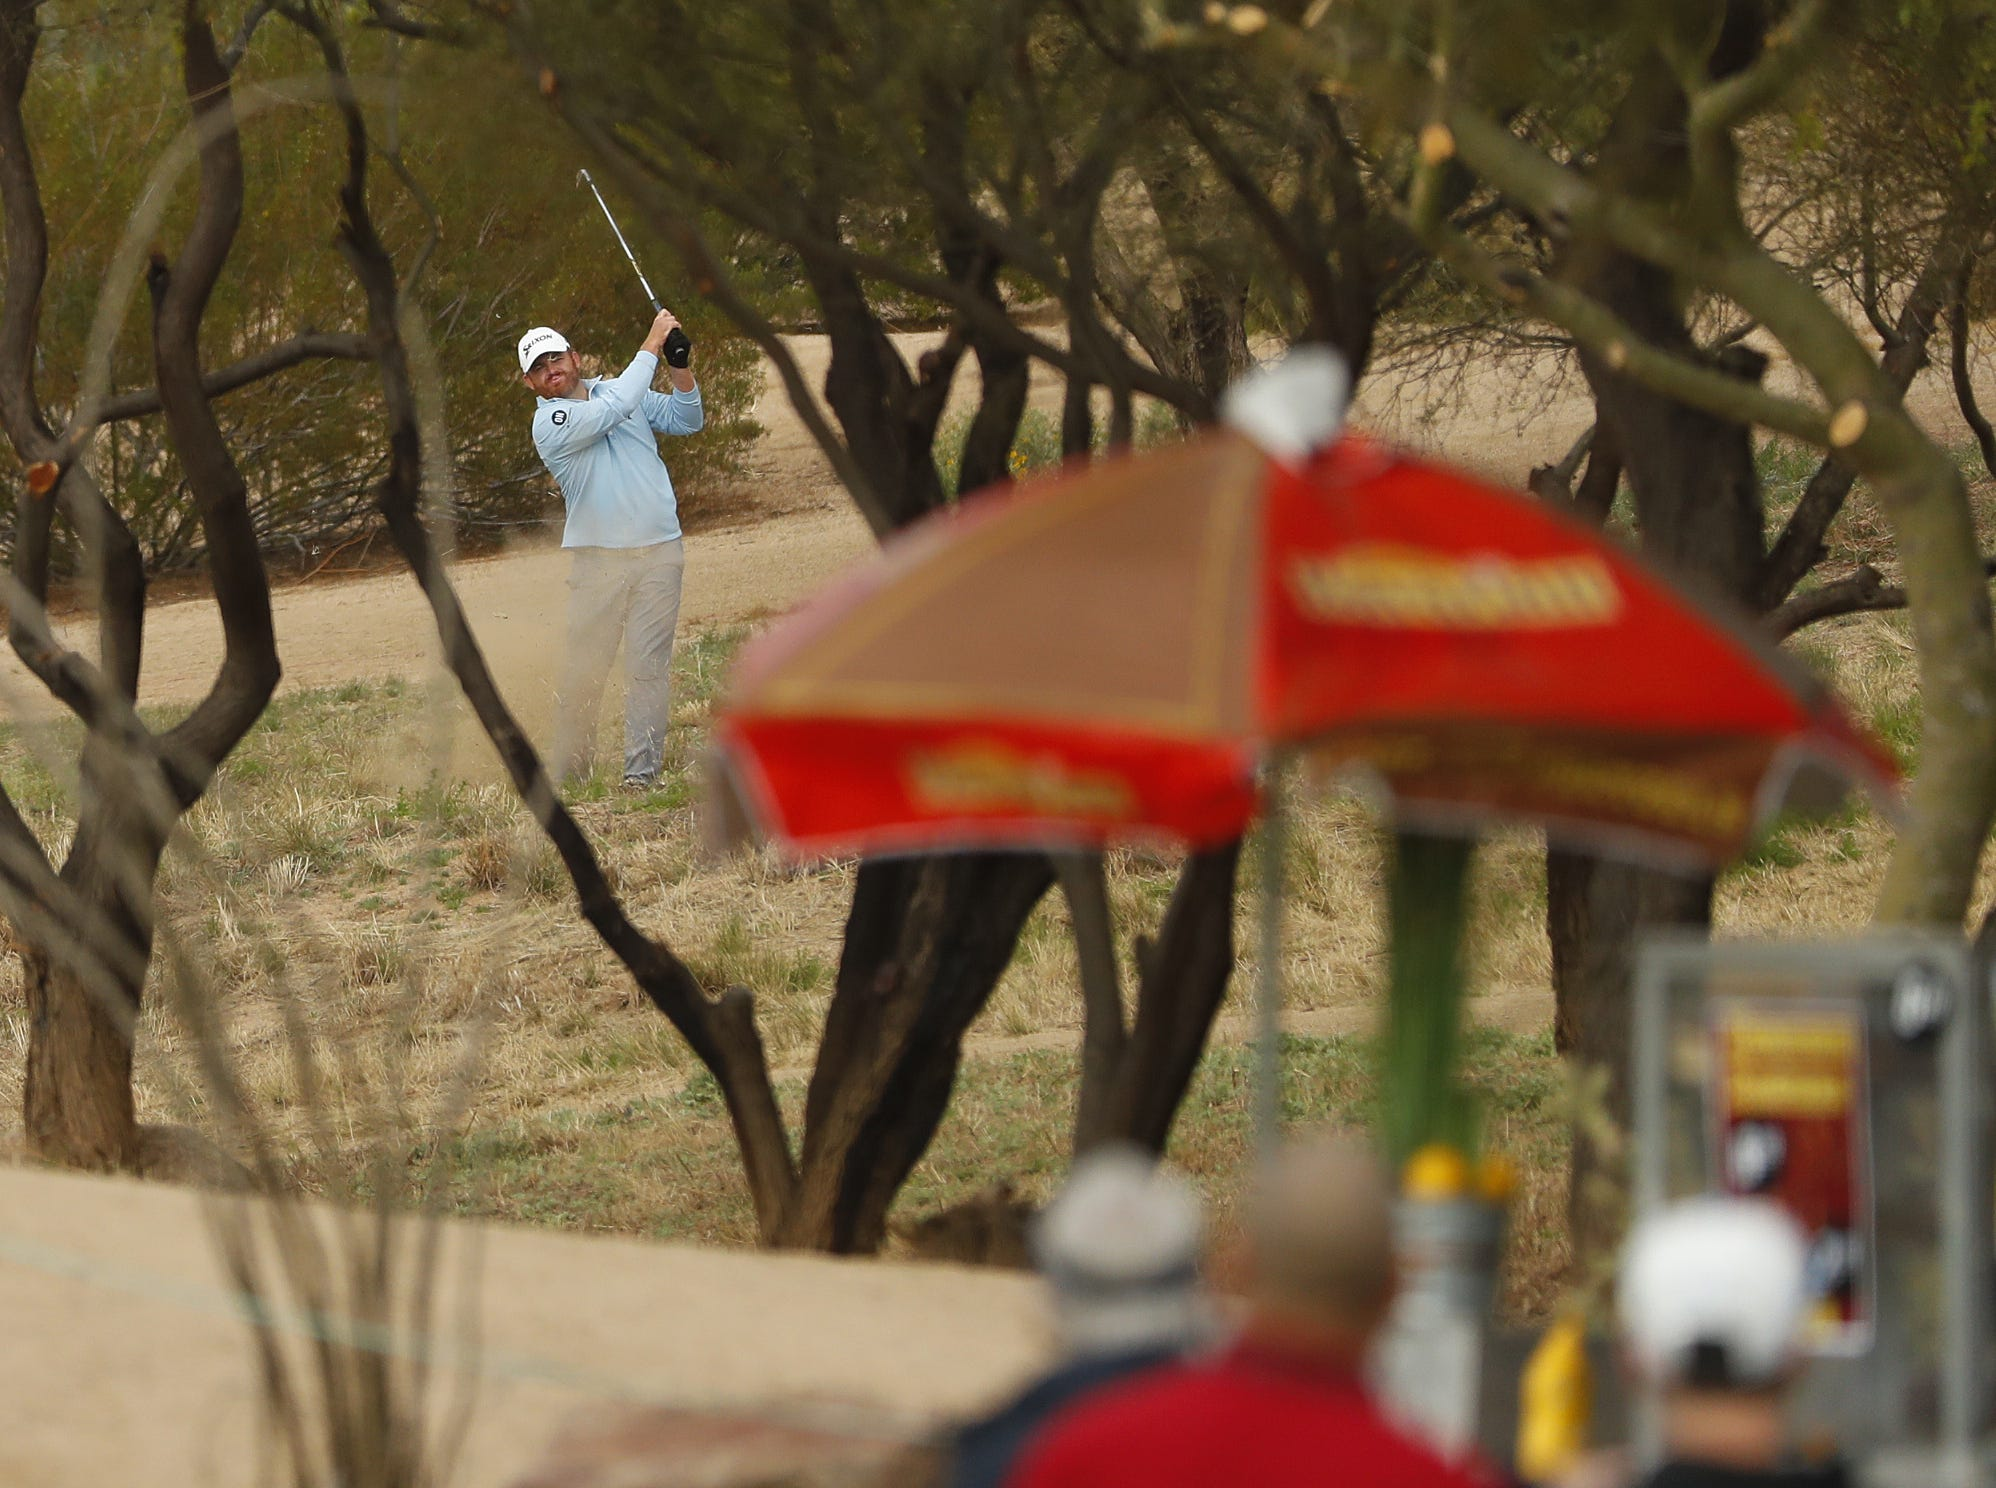 J.B. Holmes plays a shot from out of bounds on the 9th hole during the third round of the Waste Management Phoenix Open at TPC Scottsdale in Scottsdale, Ariz. on February 2, 2019.